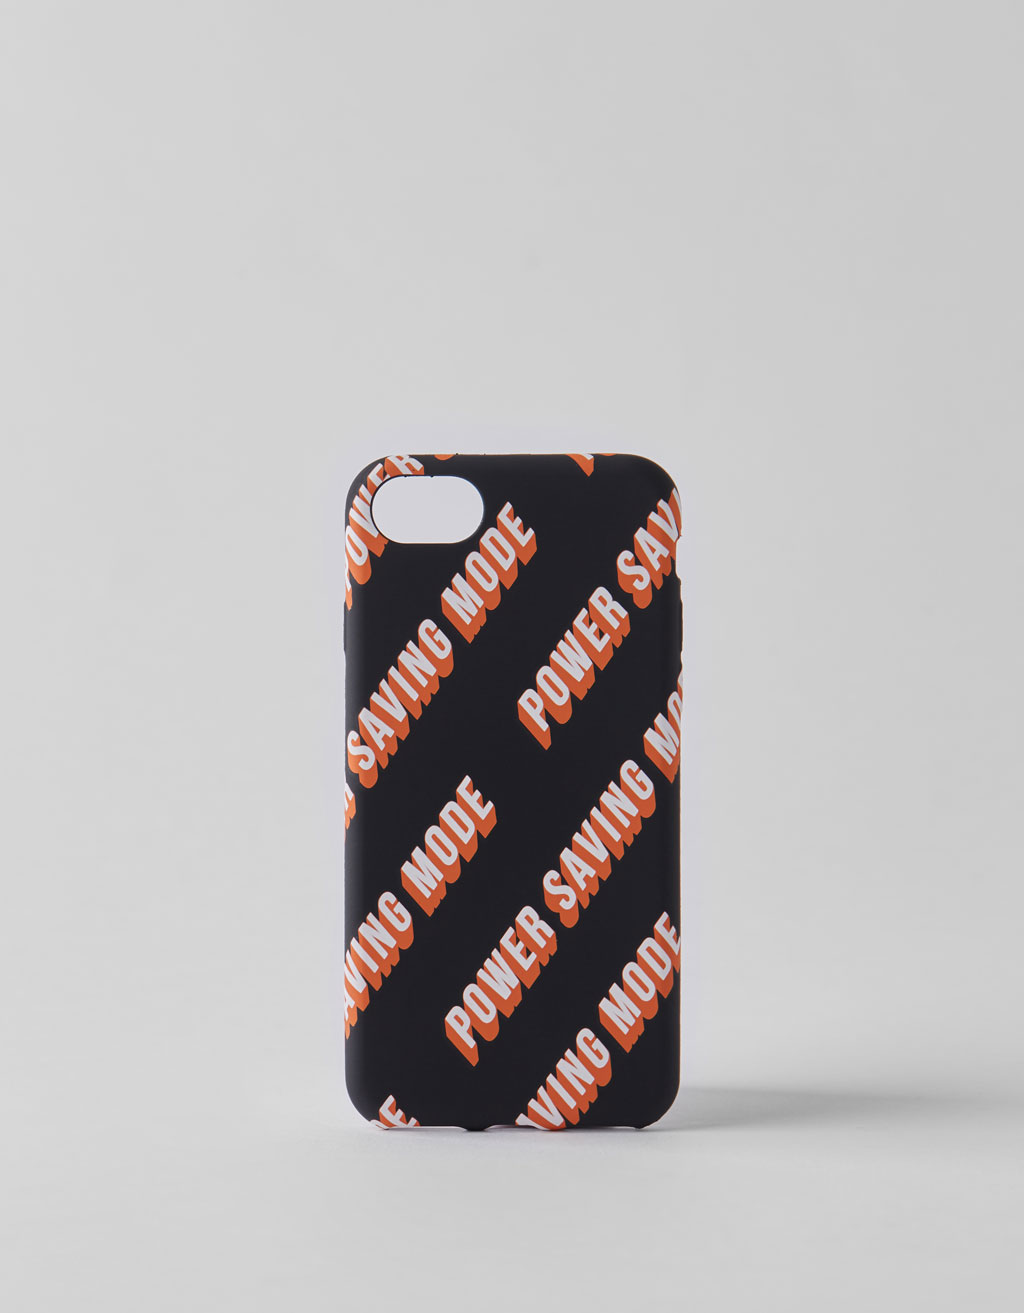 Printed iPhone 6/7/8 case